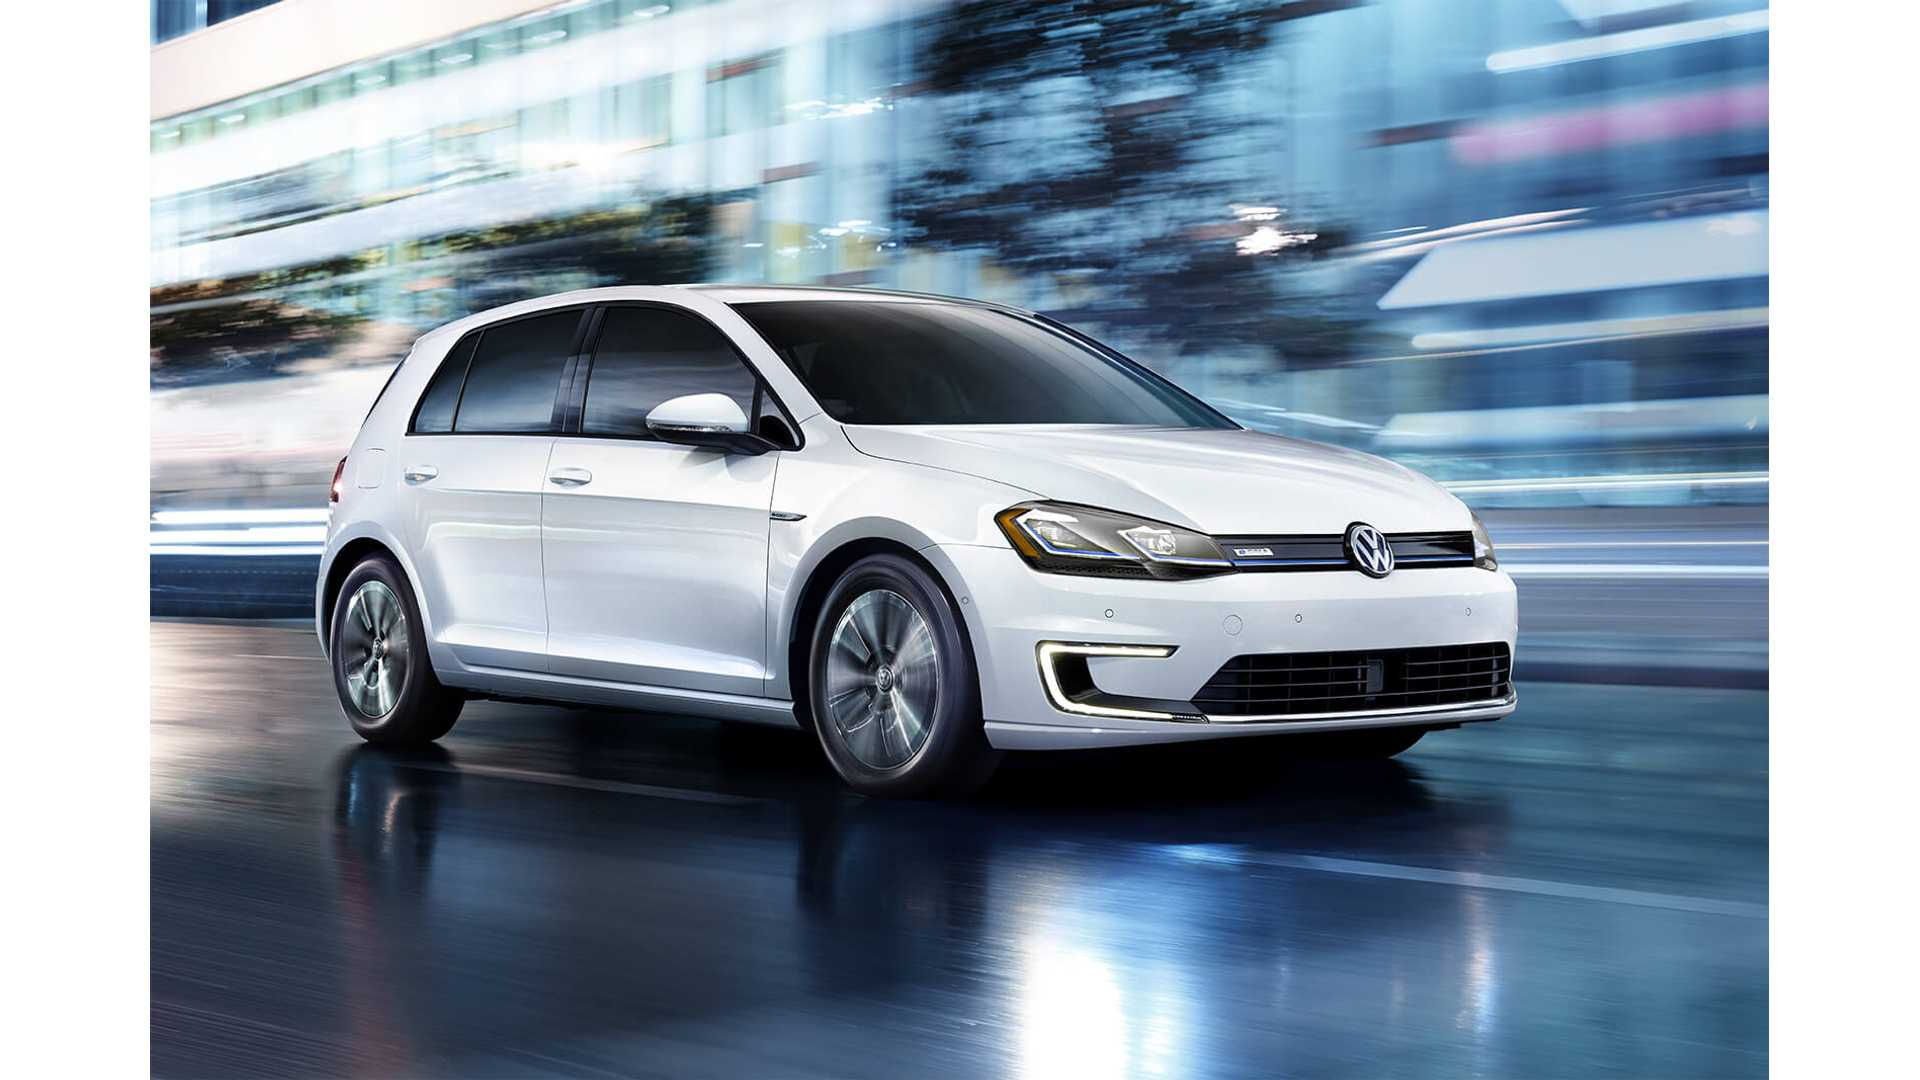 87 All New Vw E Golf 2019 Price And Review